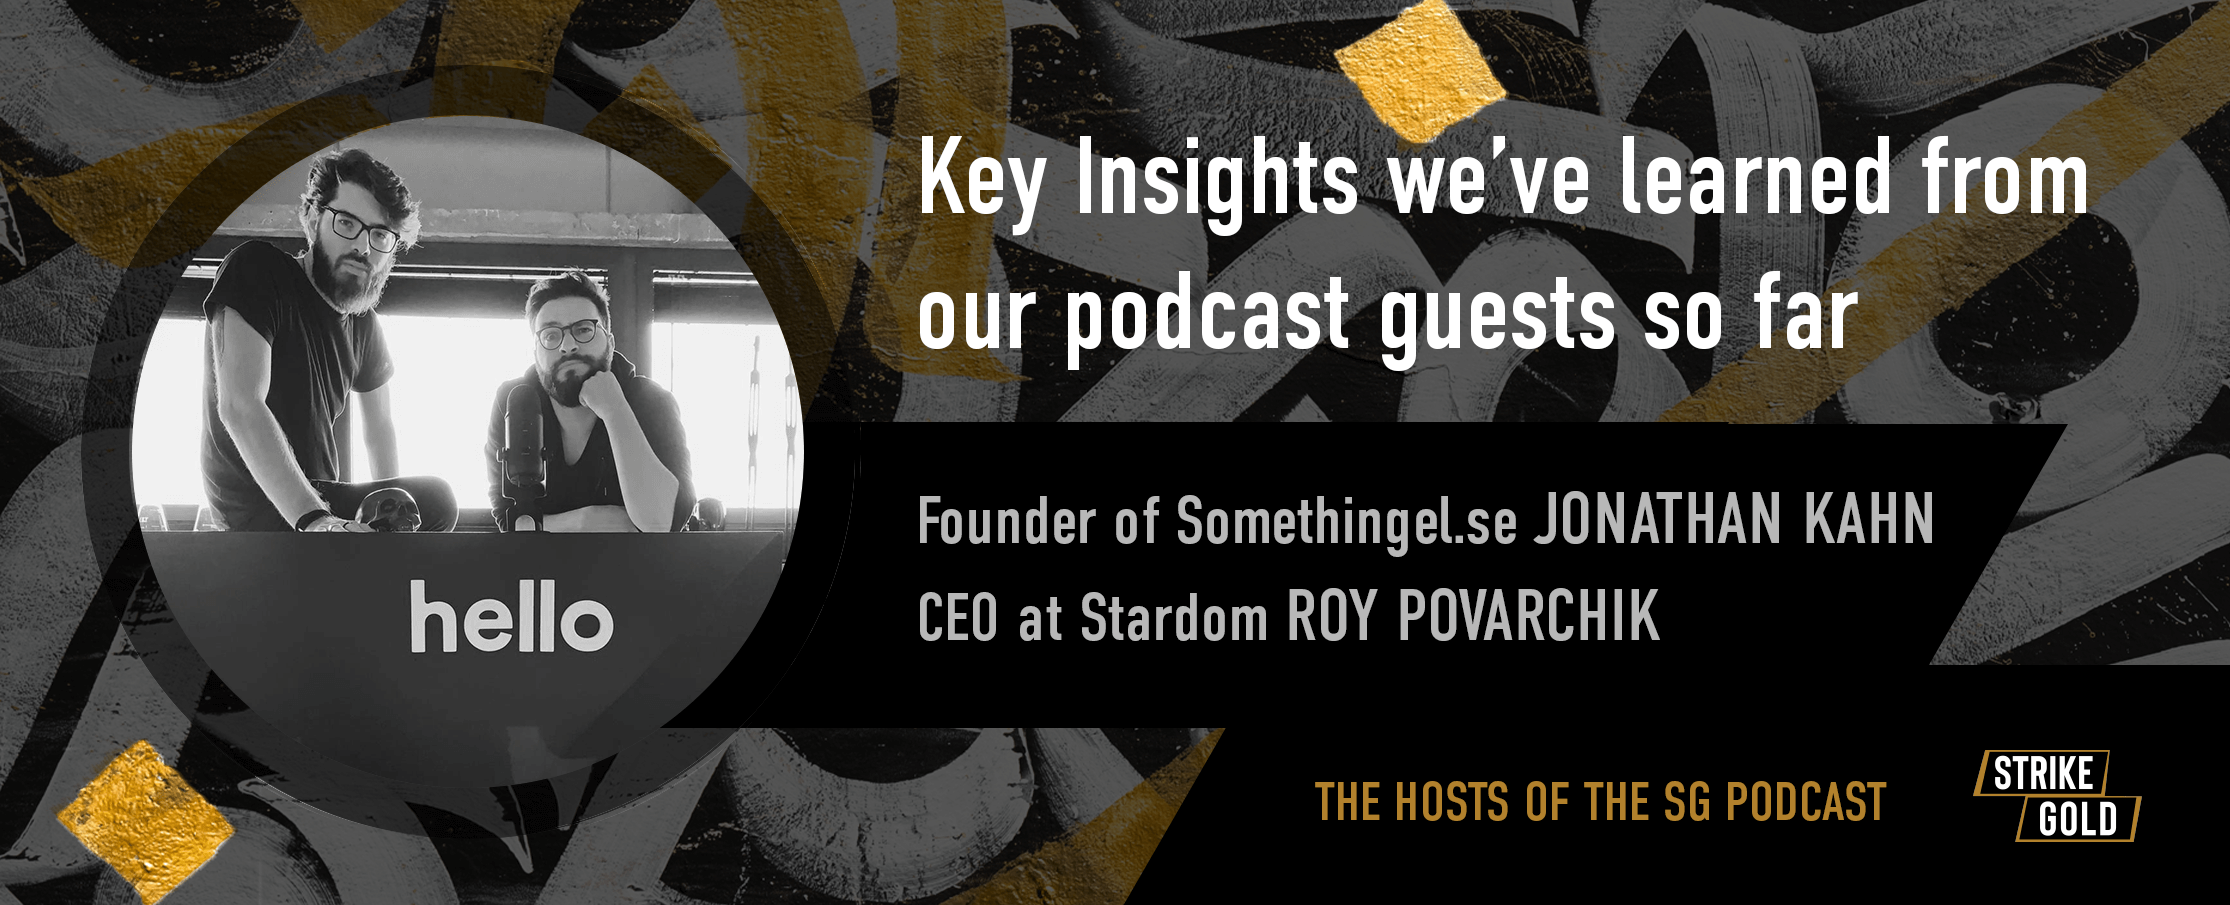 Key Insights we've learned from our podcast guests so far